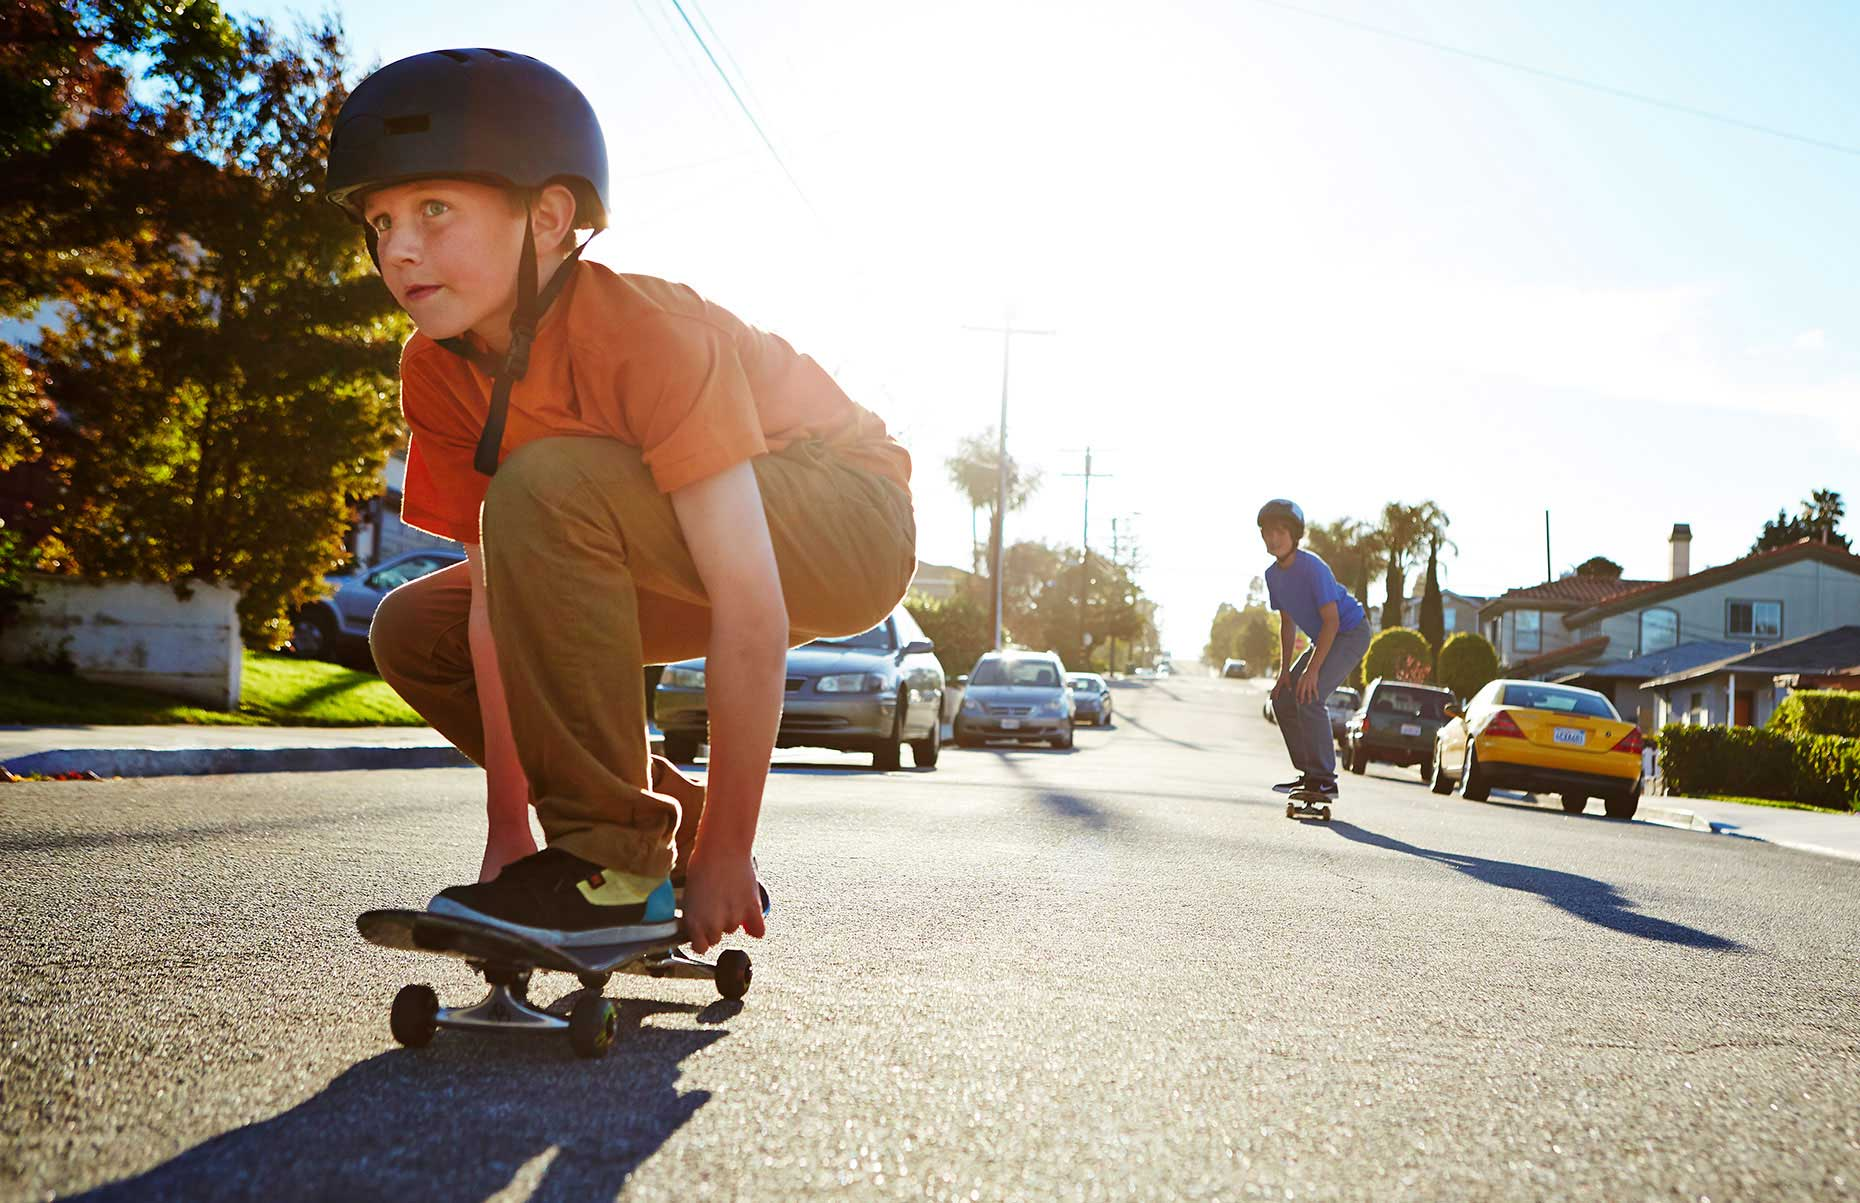 Photography_Children and Teens_Crouching Skateboard Boy-Tony Garcia